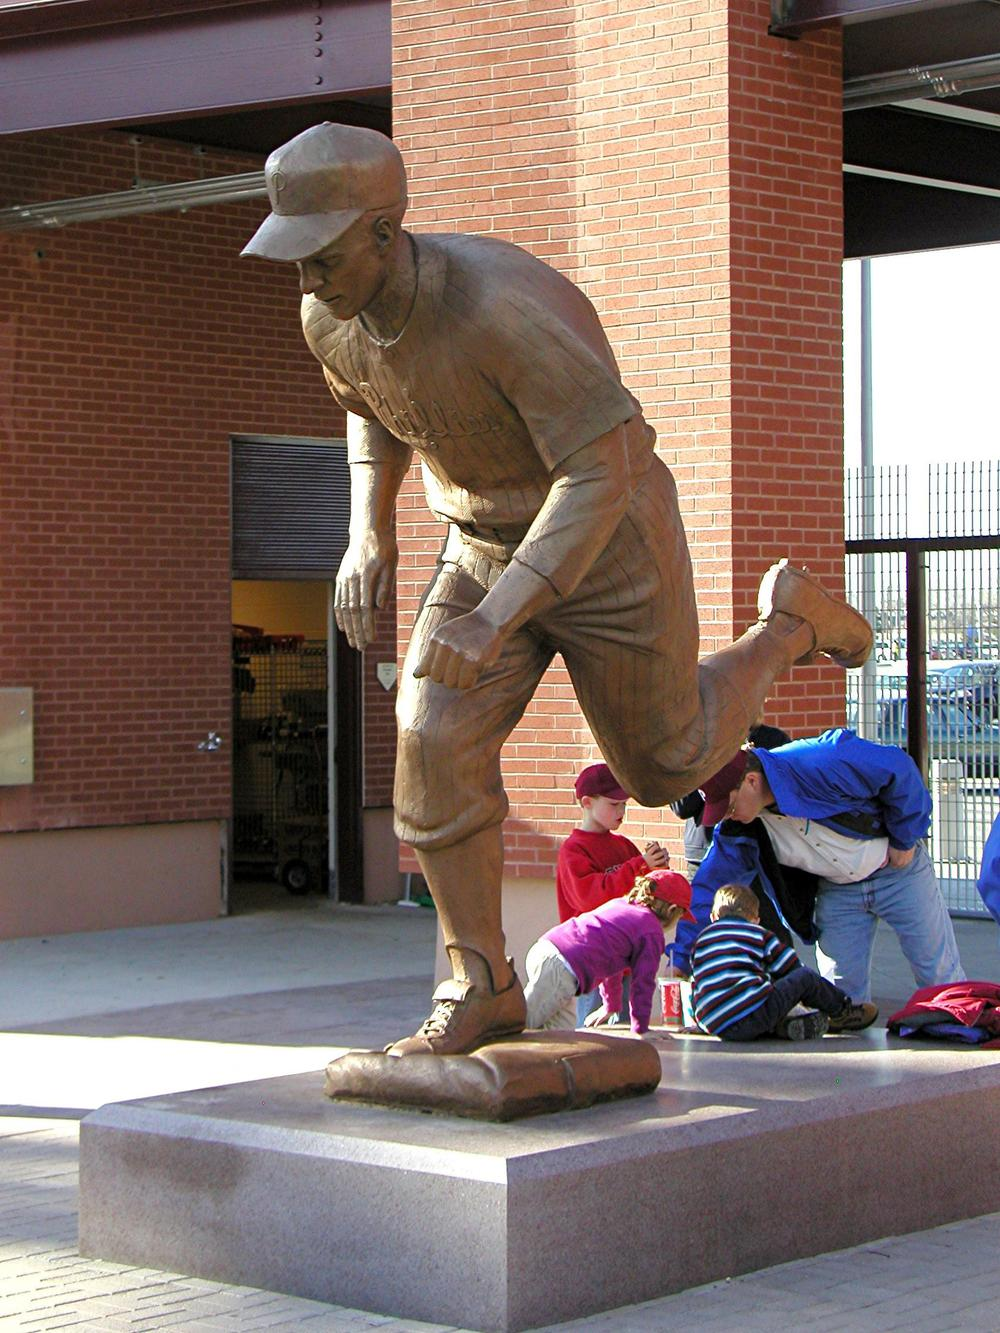 Richie Ashburn, sports sculpture